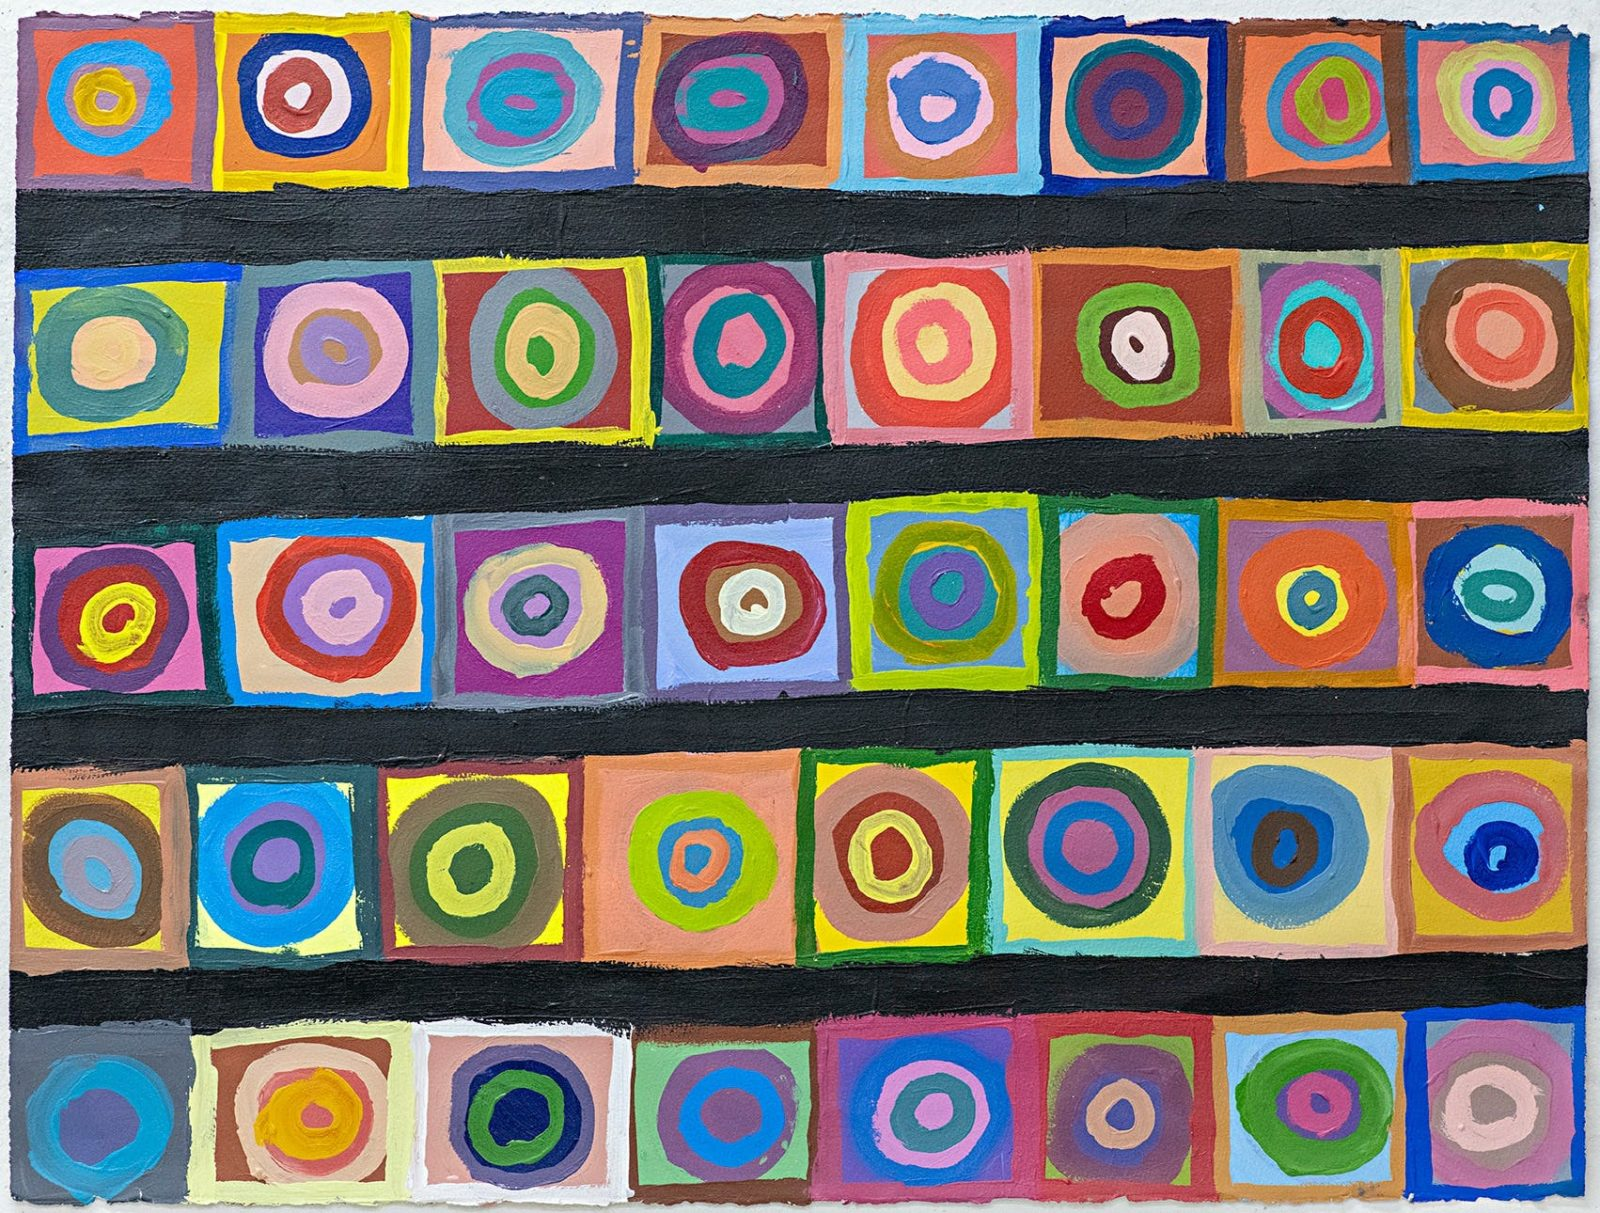 Artwork by Samraing Chea, 4 rows and 6 columns of colourful squares with colourful circles inside.